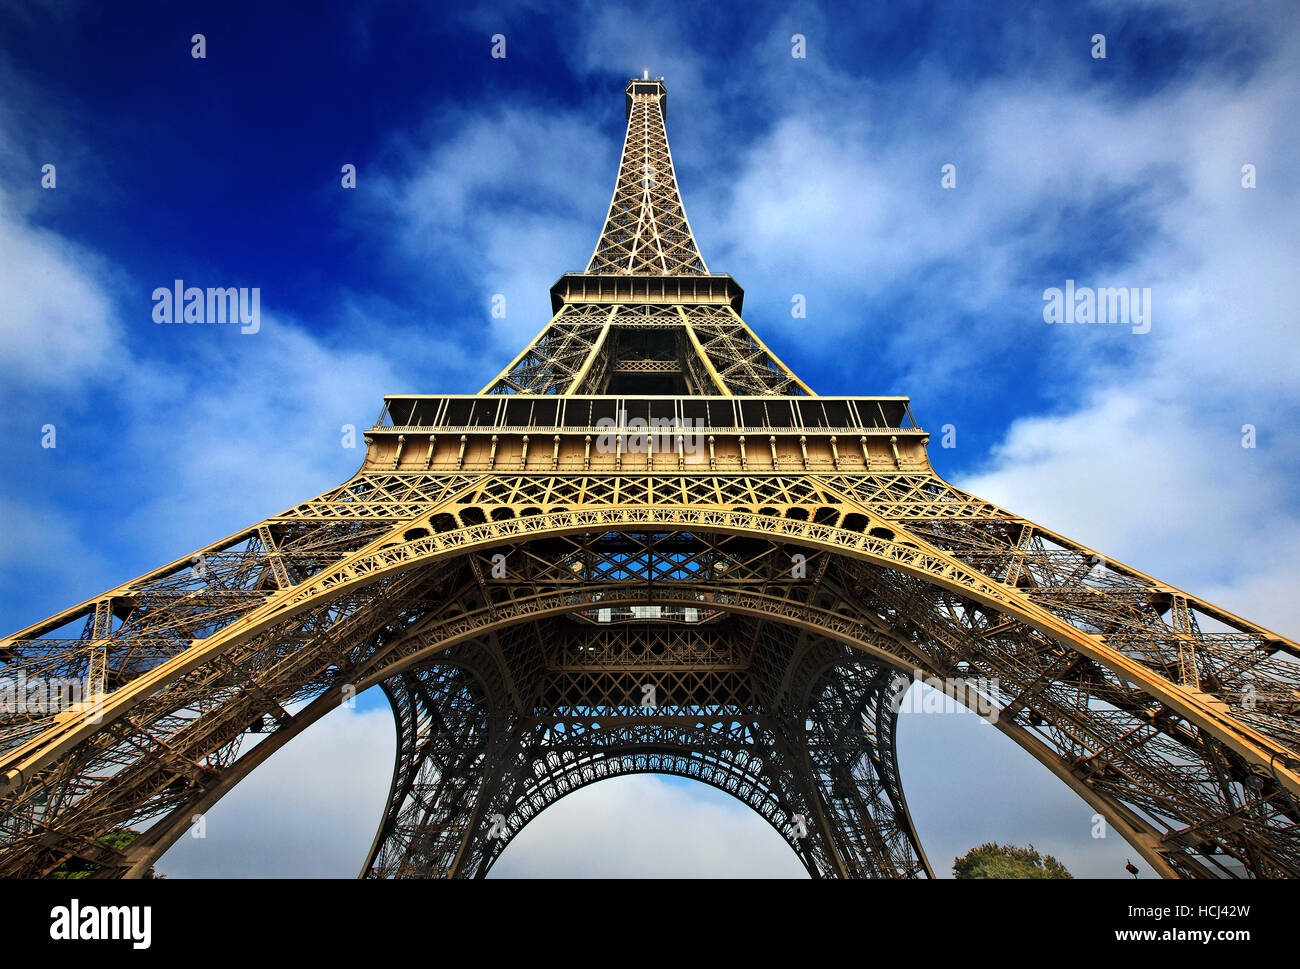 The Eiffel Tower, Paris, France Stock Photo